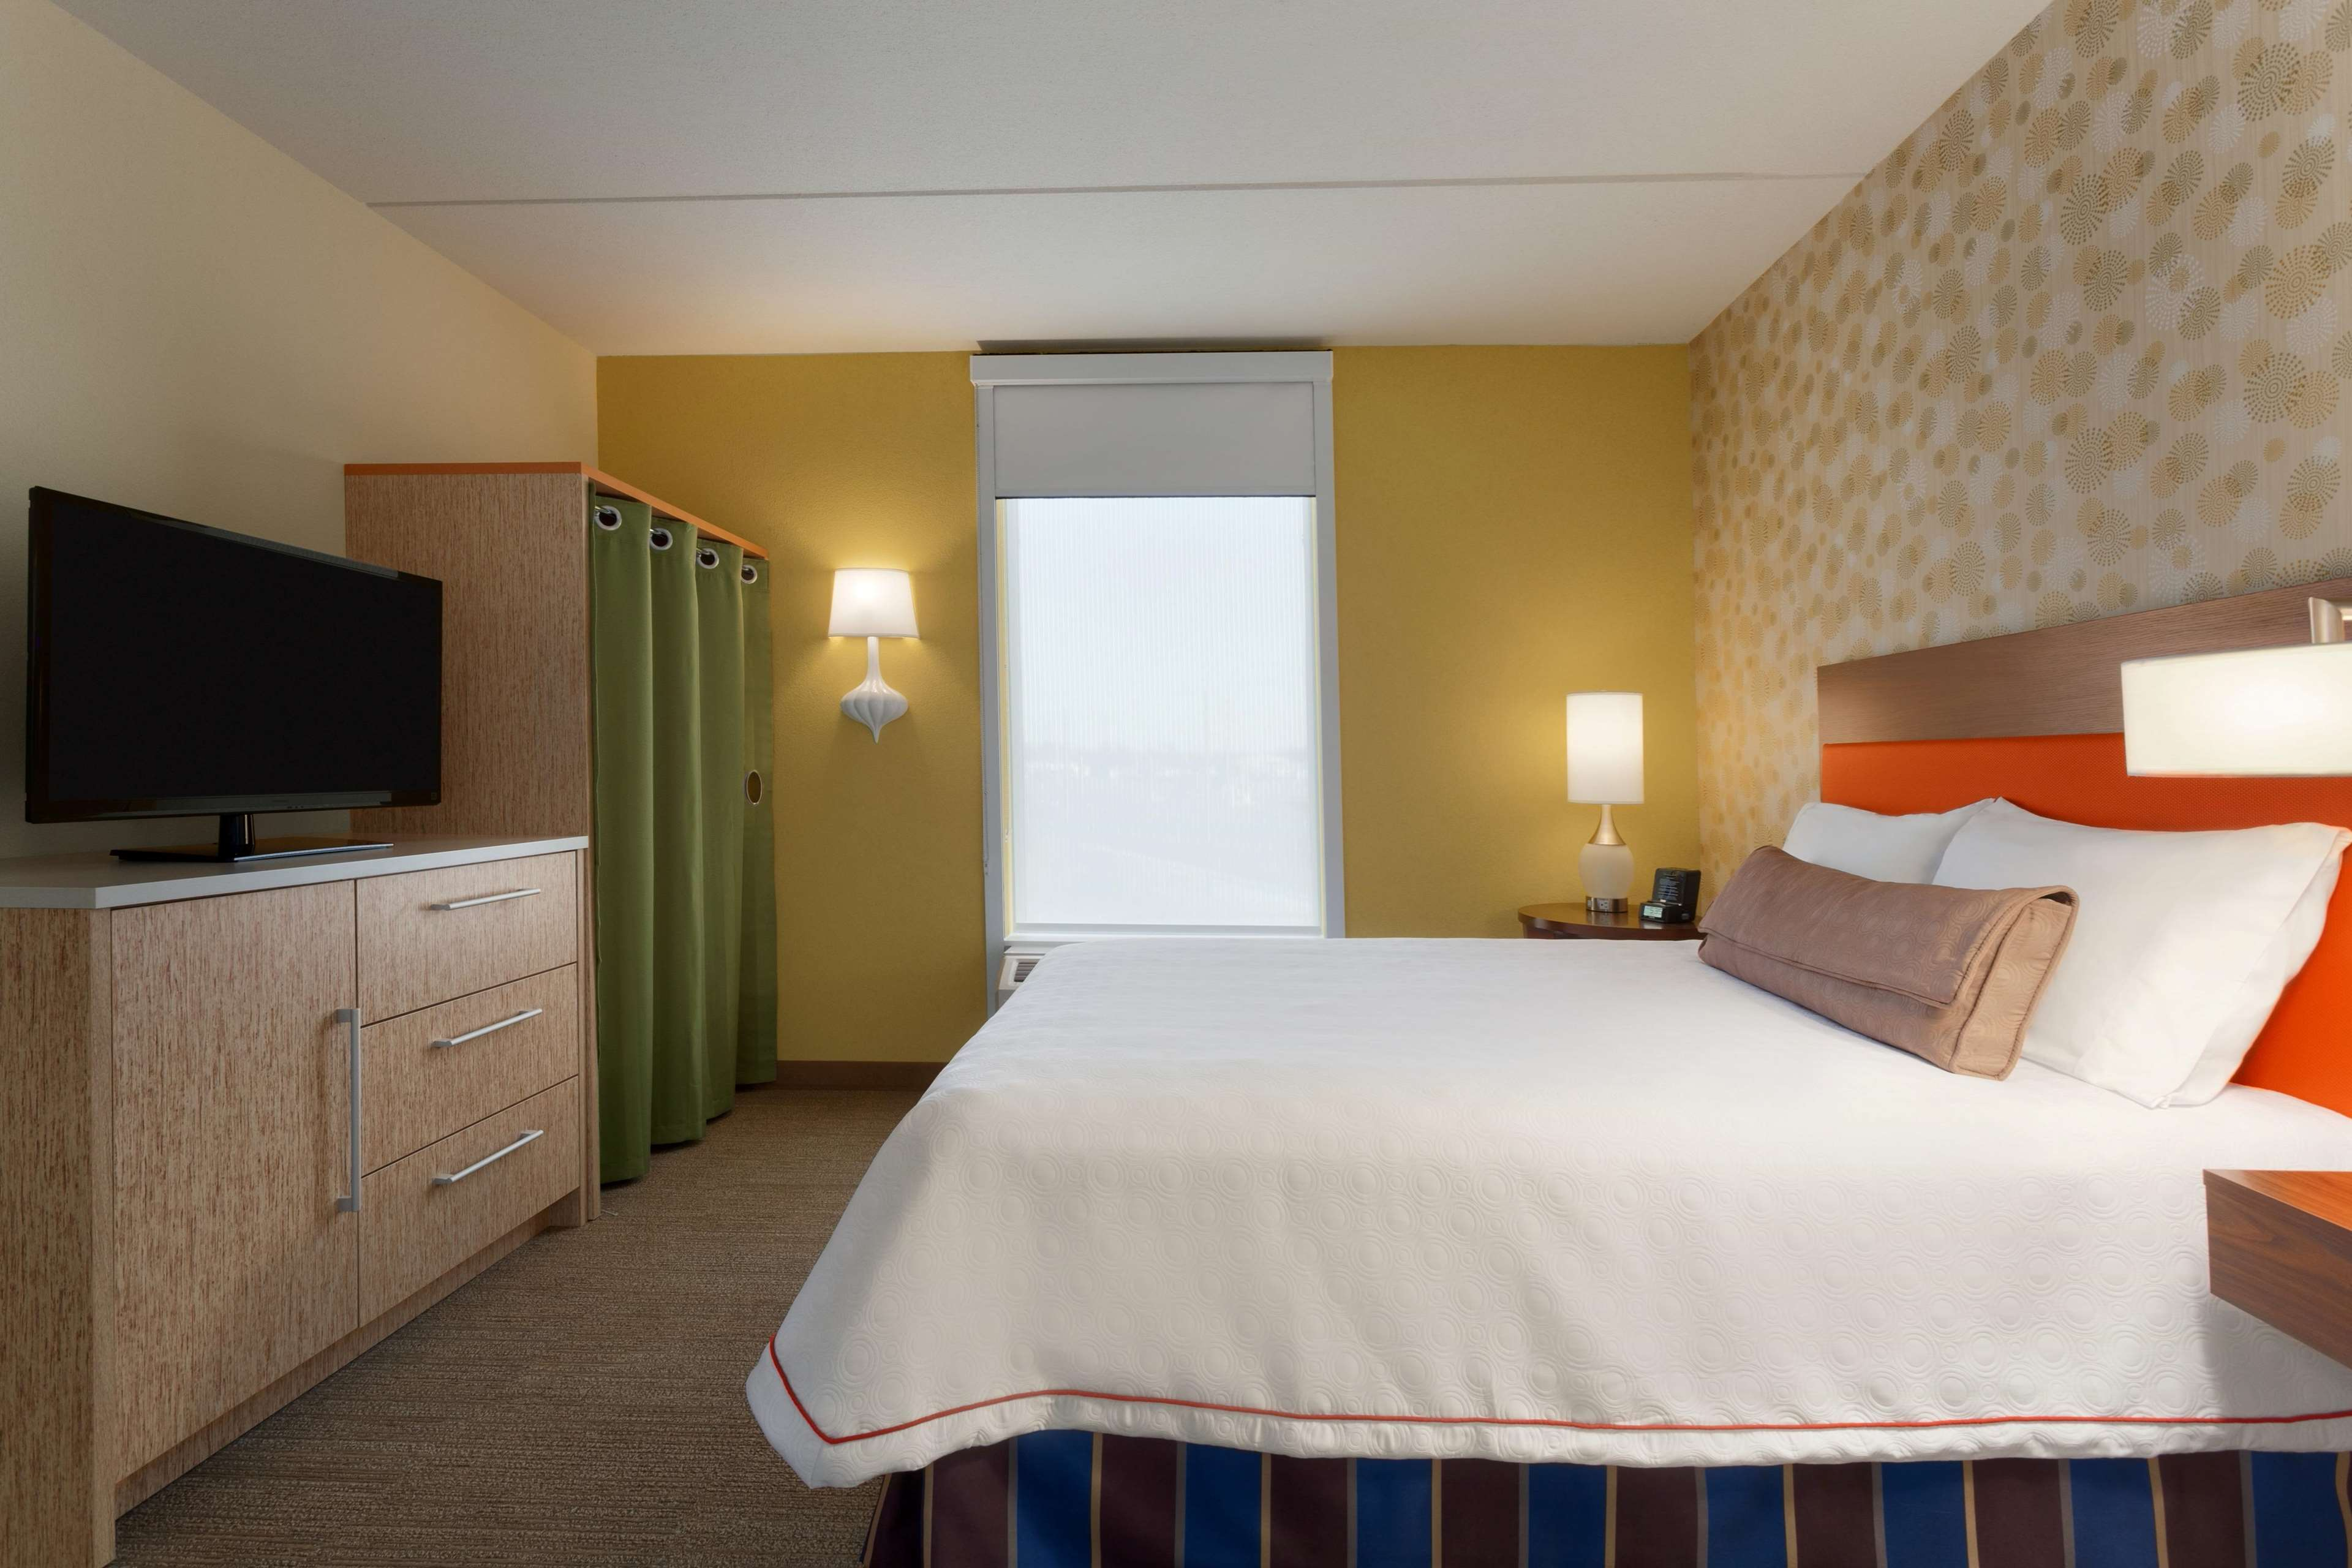 Home2 Suites by Hilton Baltimore / Aberdeen, MD image 5